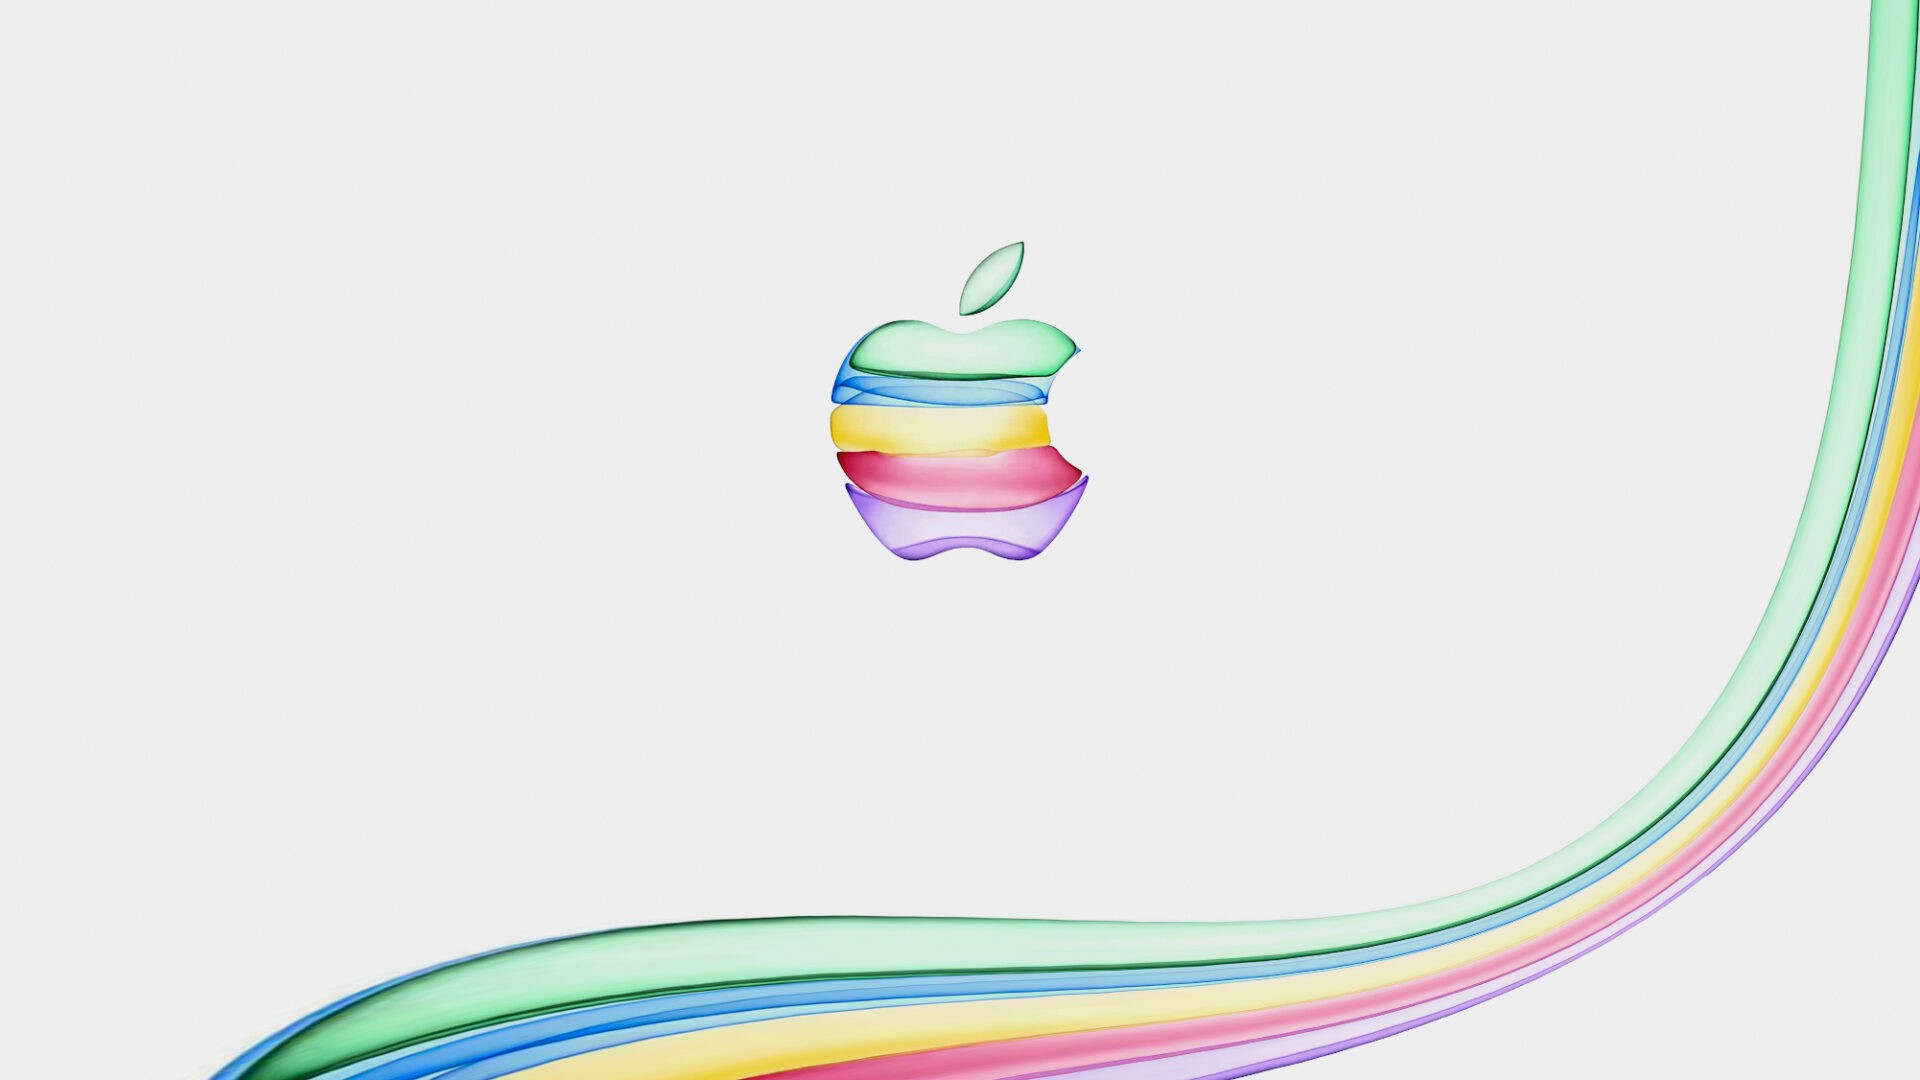 10 settembre evento apple Archivi - Evosmart.it